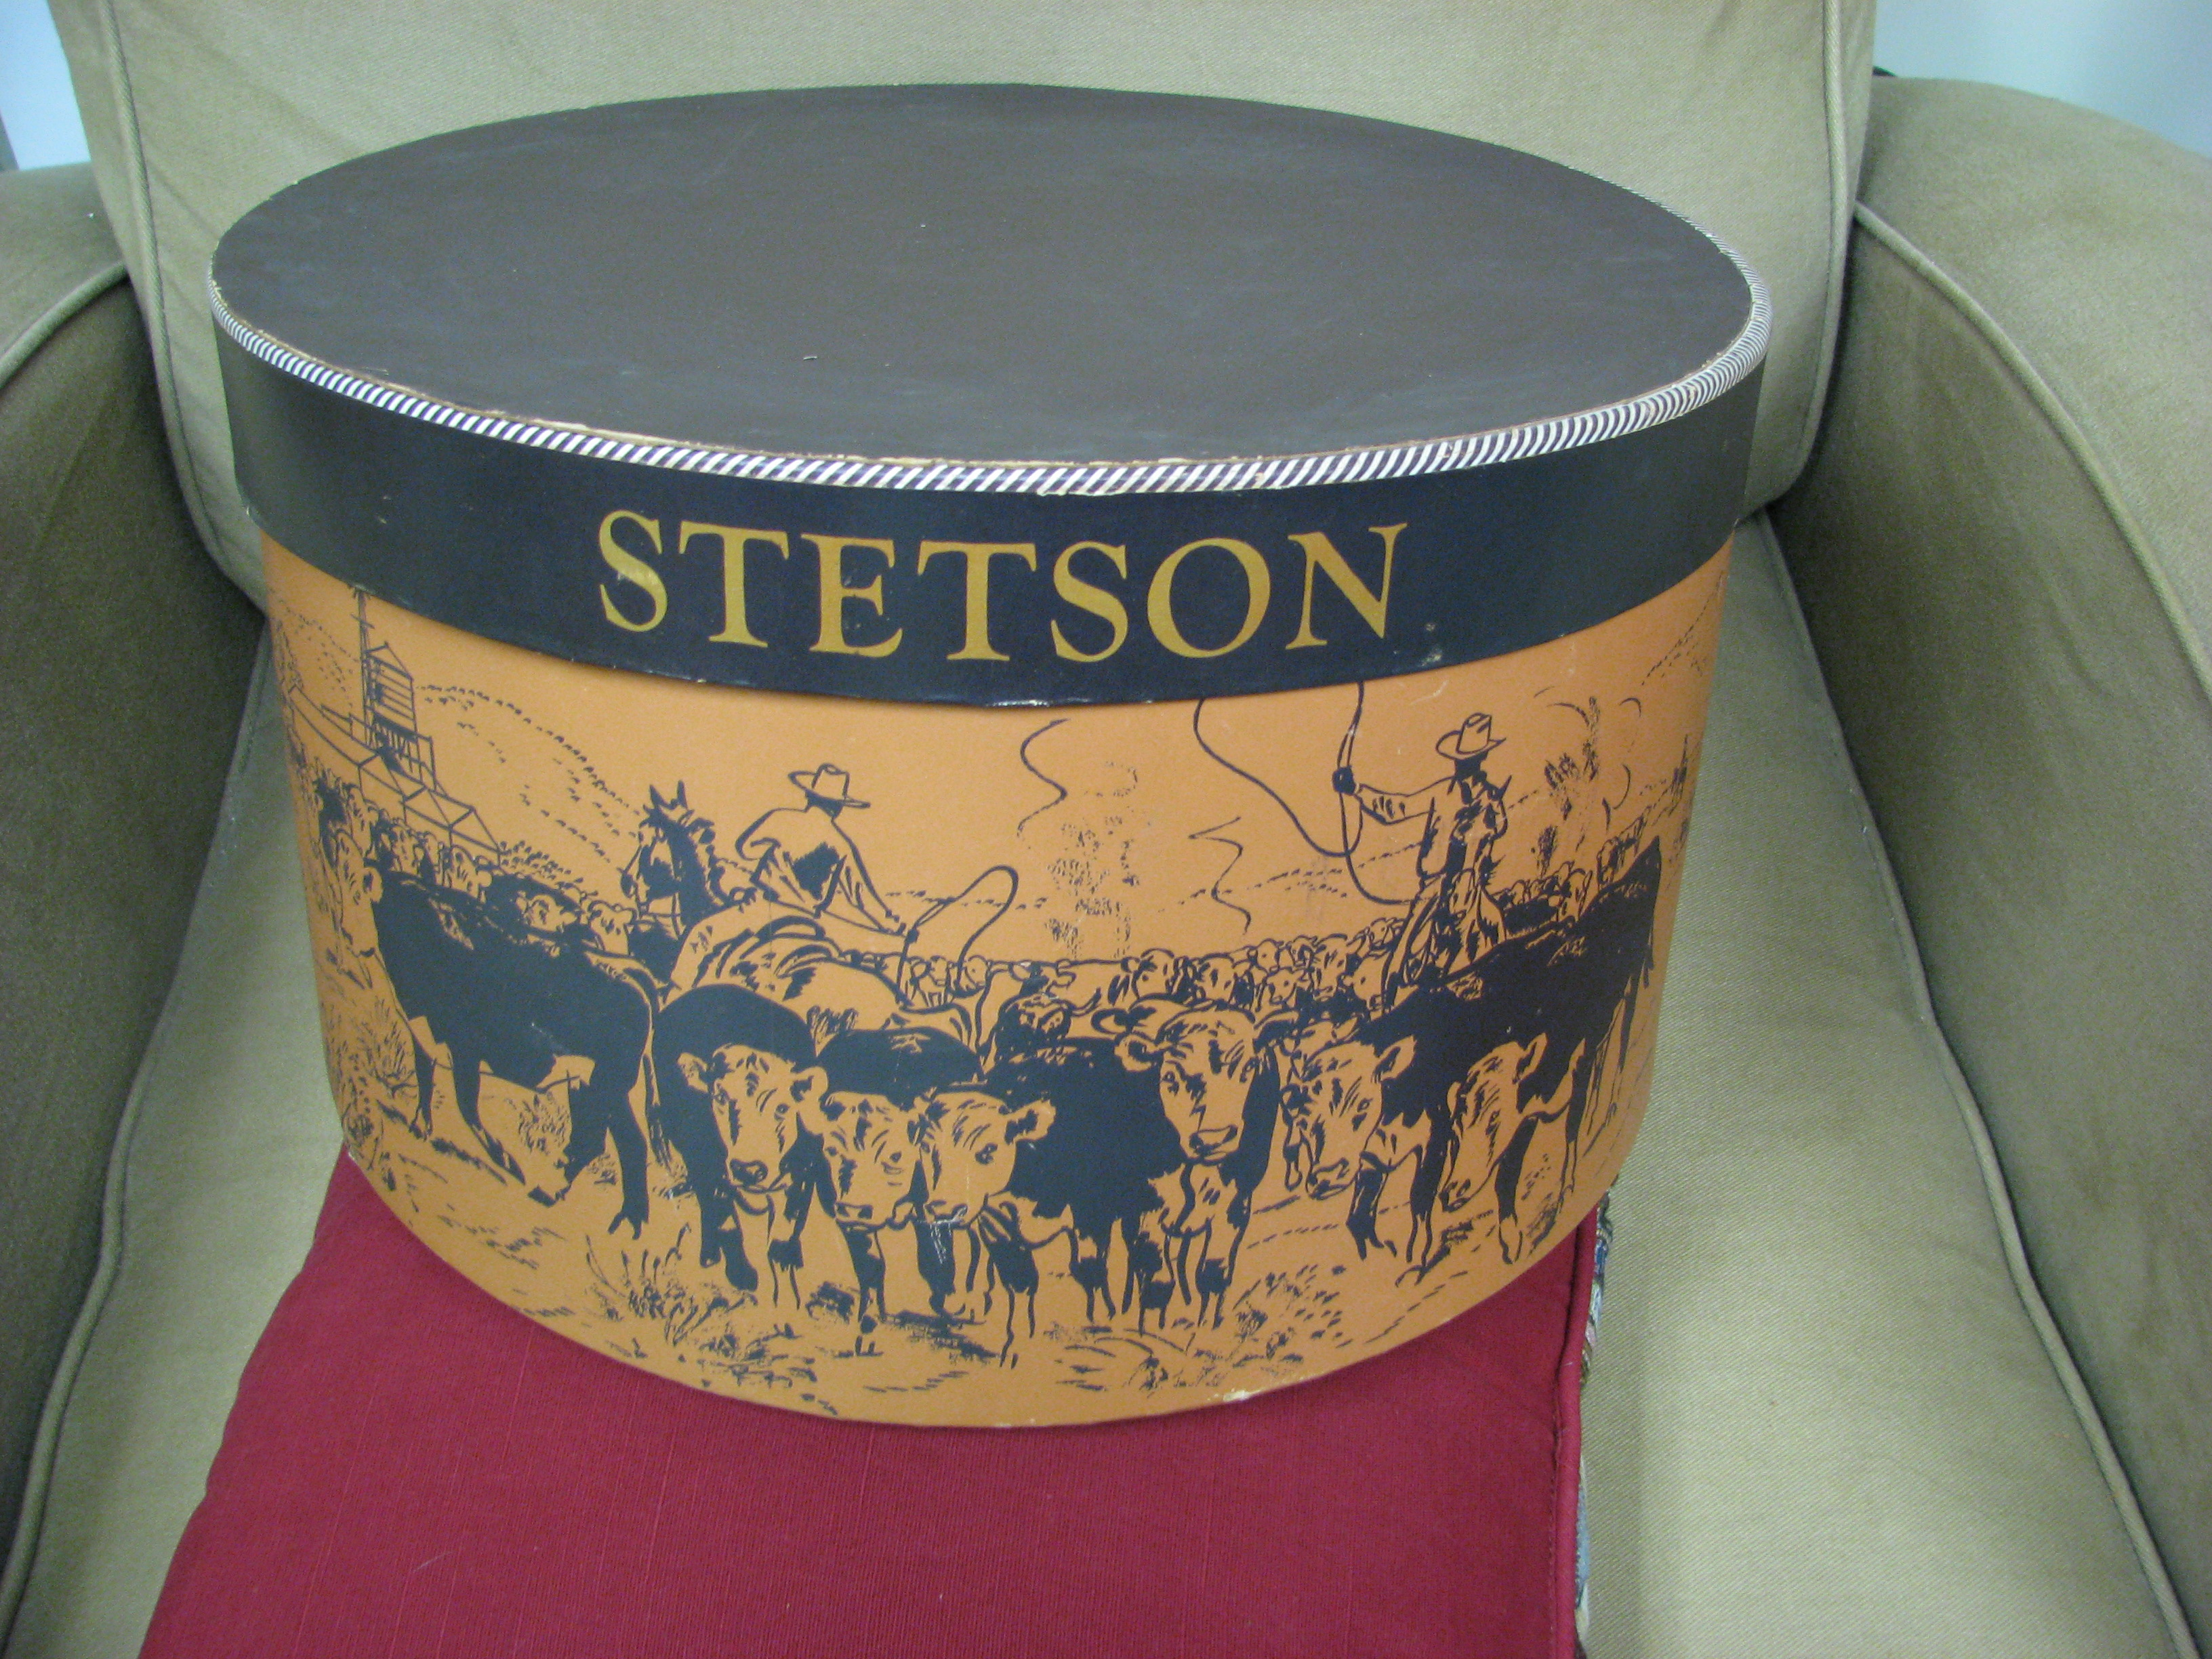 877d068b517055 ... boxes, four Stetson hats (two men's and two women's), and a variety of  printed material on the Stetson Hat Company.